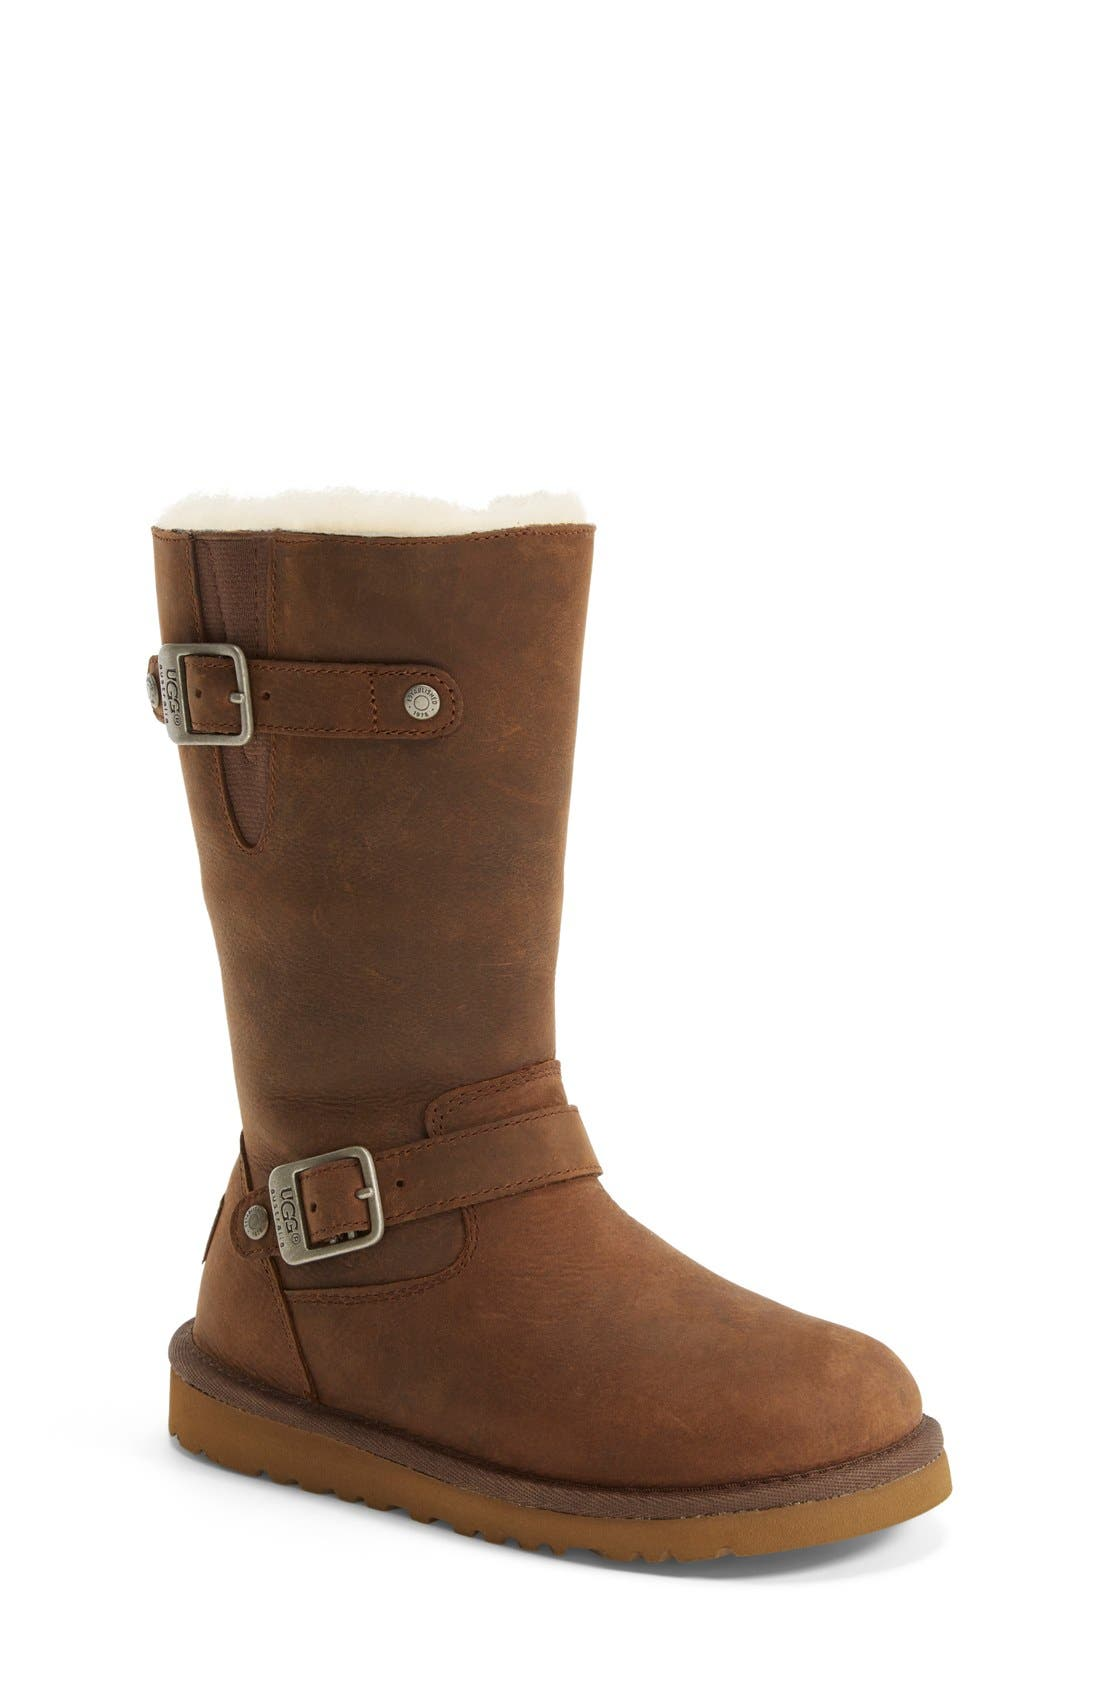 Alternate Image 1 Selected - UGG® 'Kensington' Boot (Toddler, Little Kid & Big Kid)